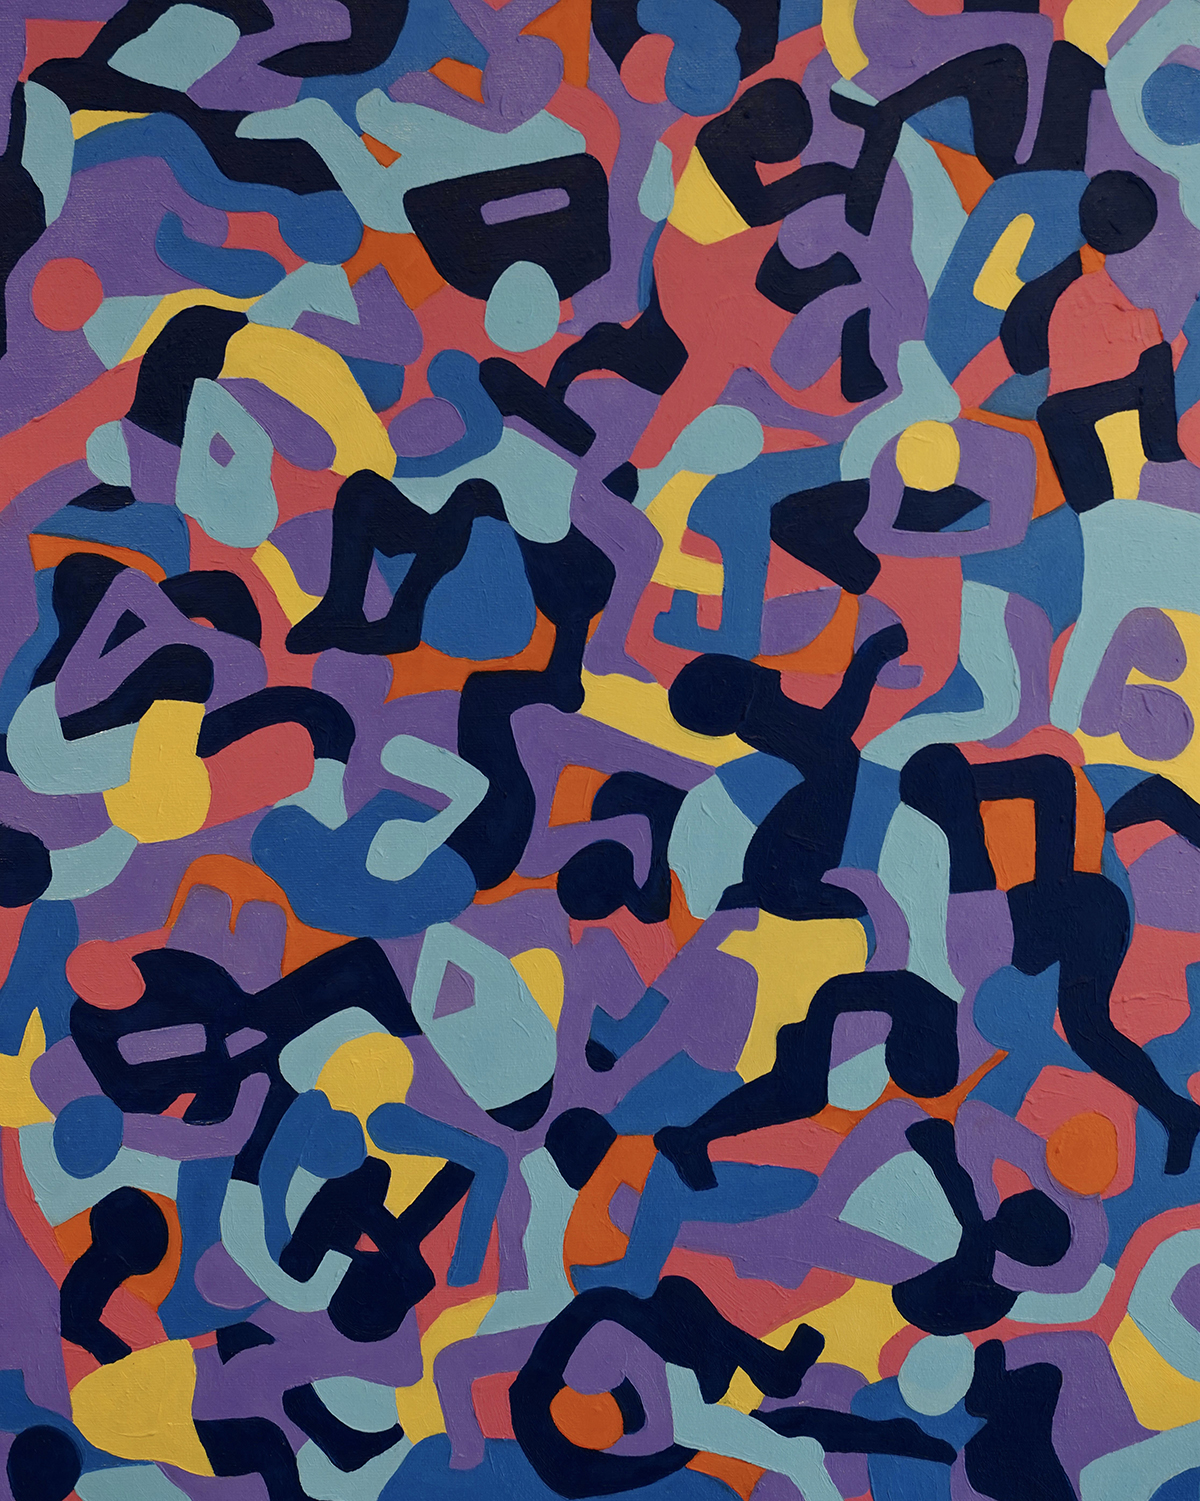 untitled camo 3, 16in x 20in, oil on canvasweb.jpg